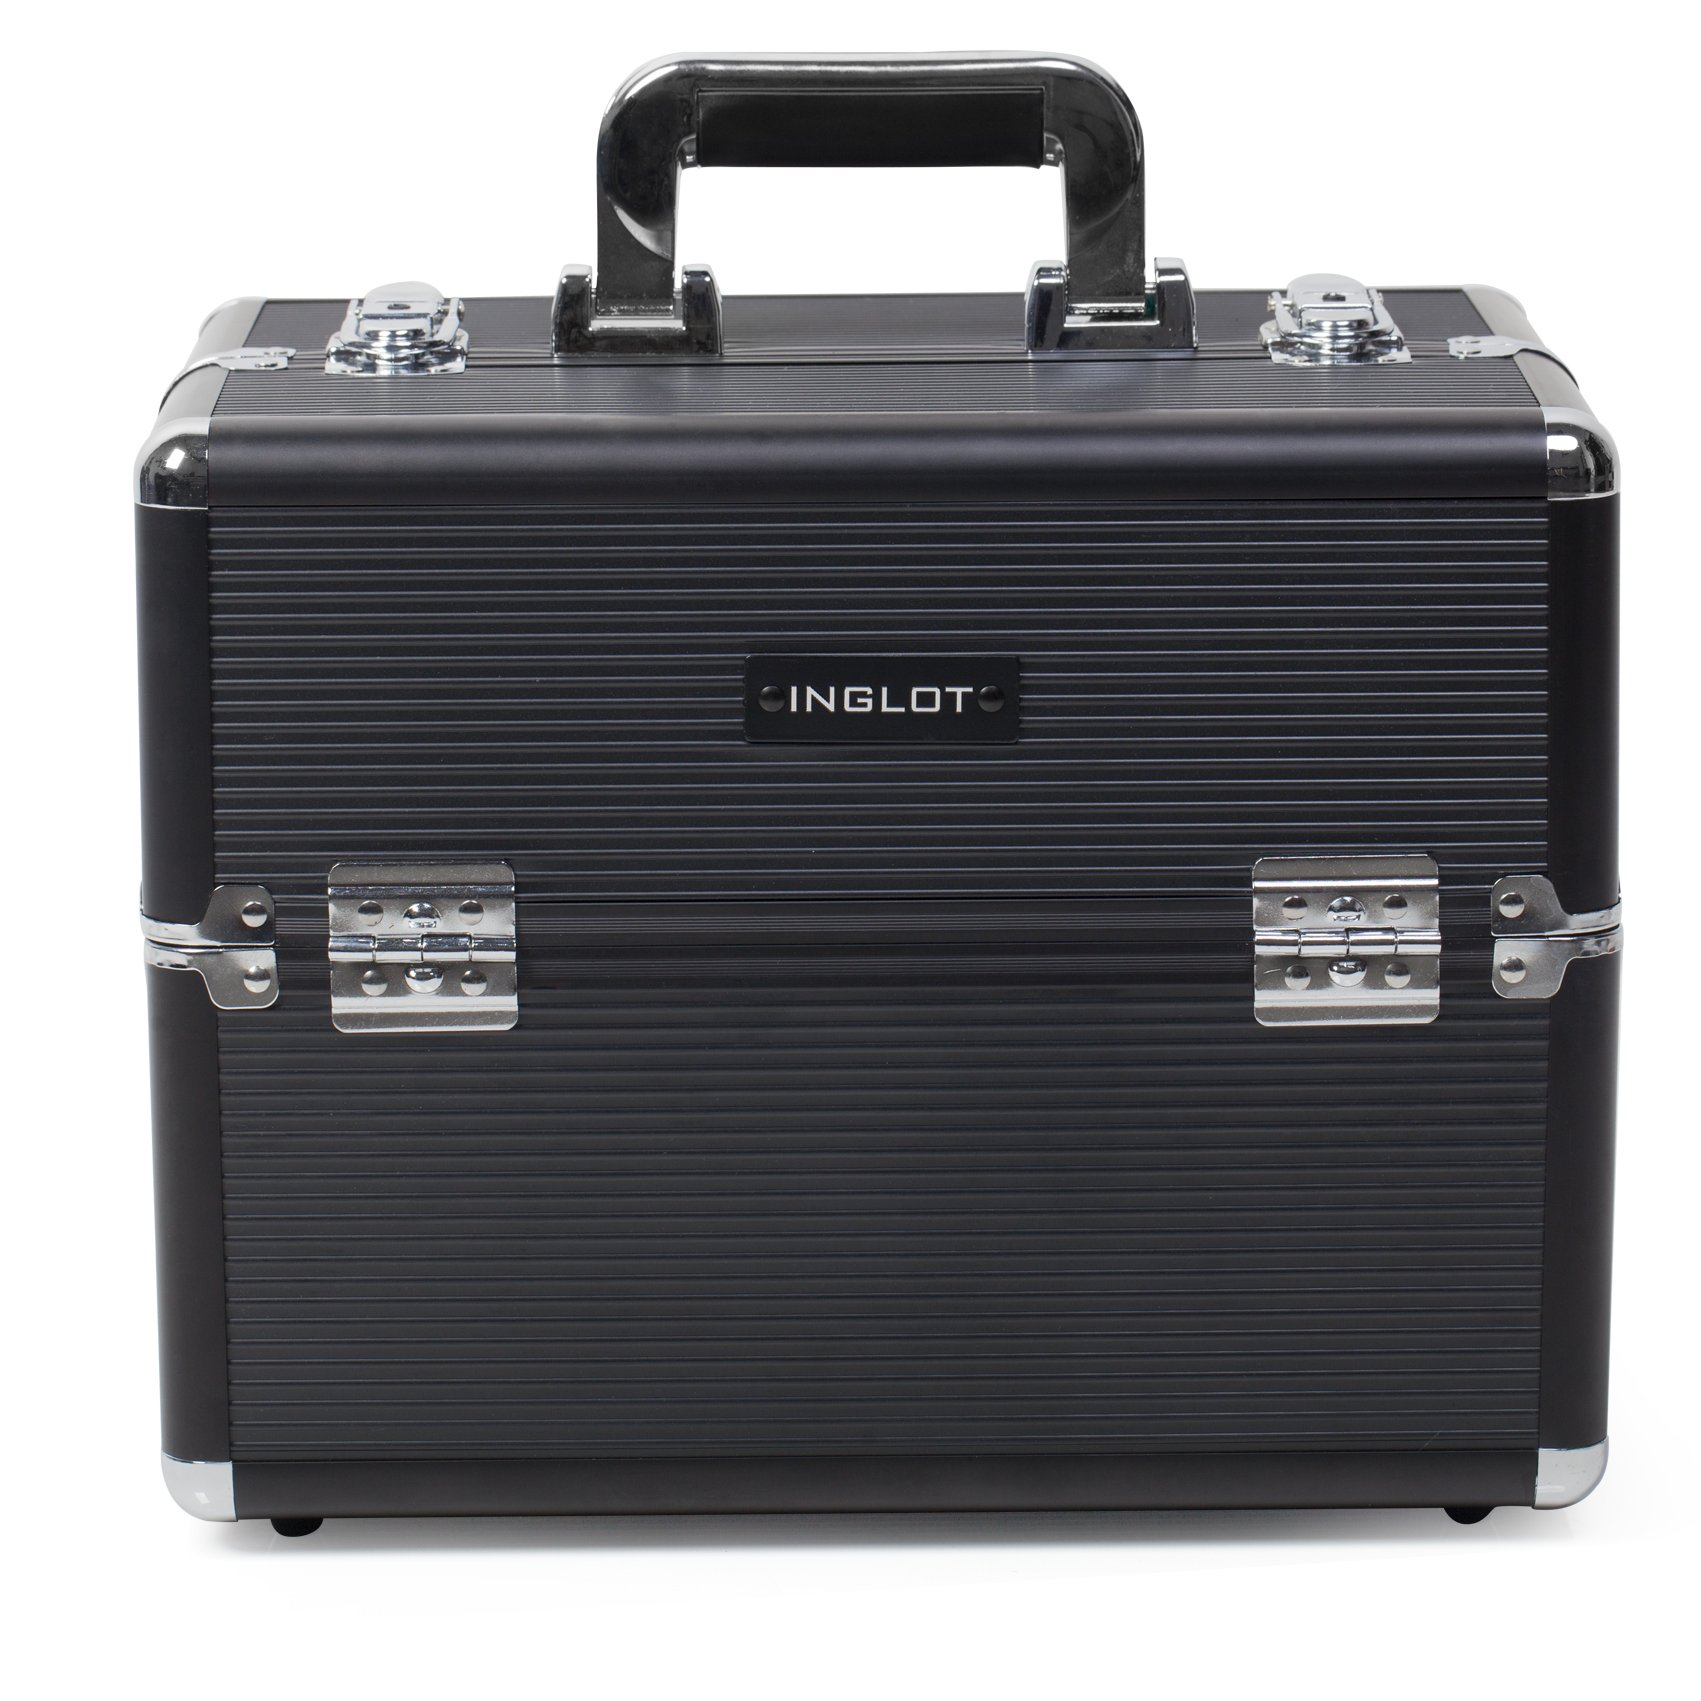 Inglot Makeup Case Kc-156-Bs-2 by Inglot